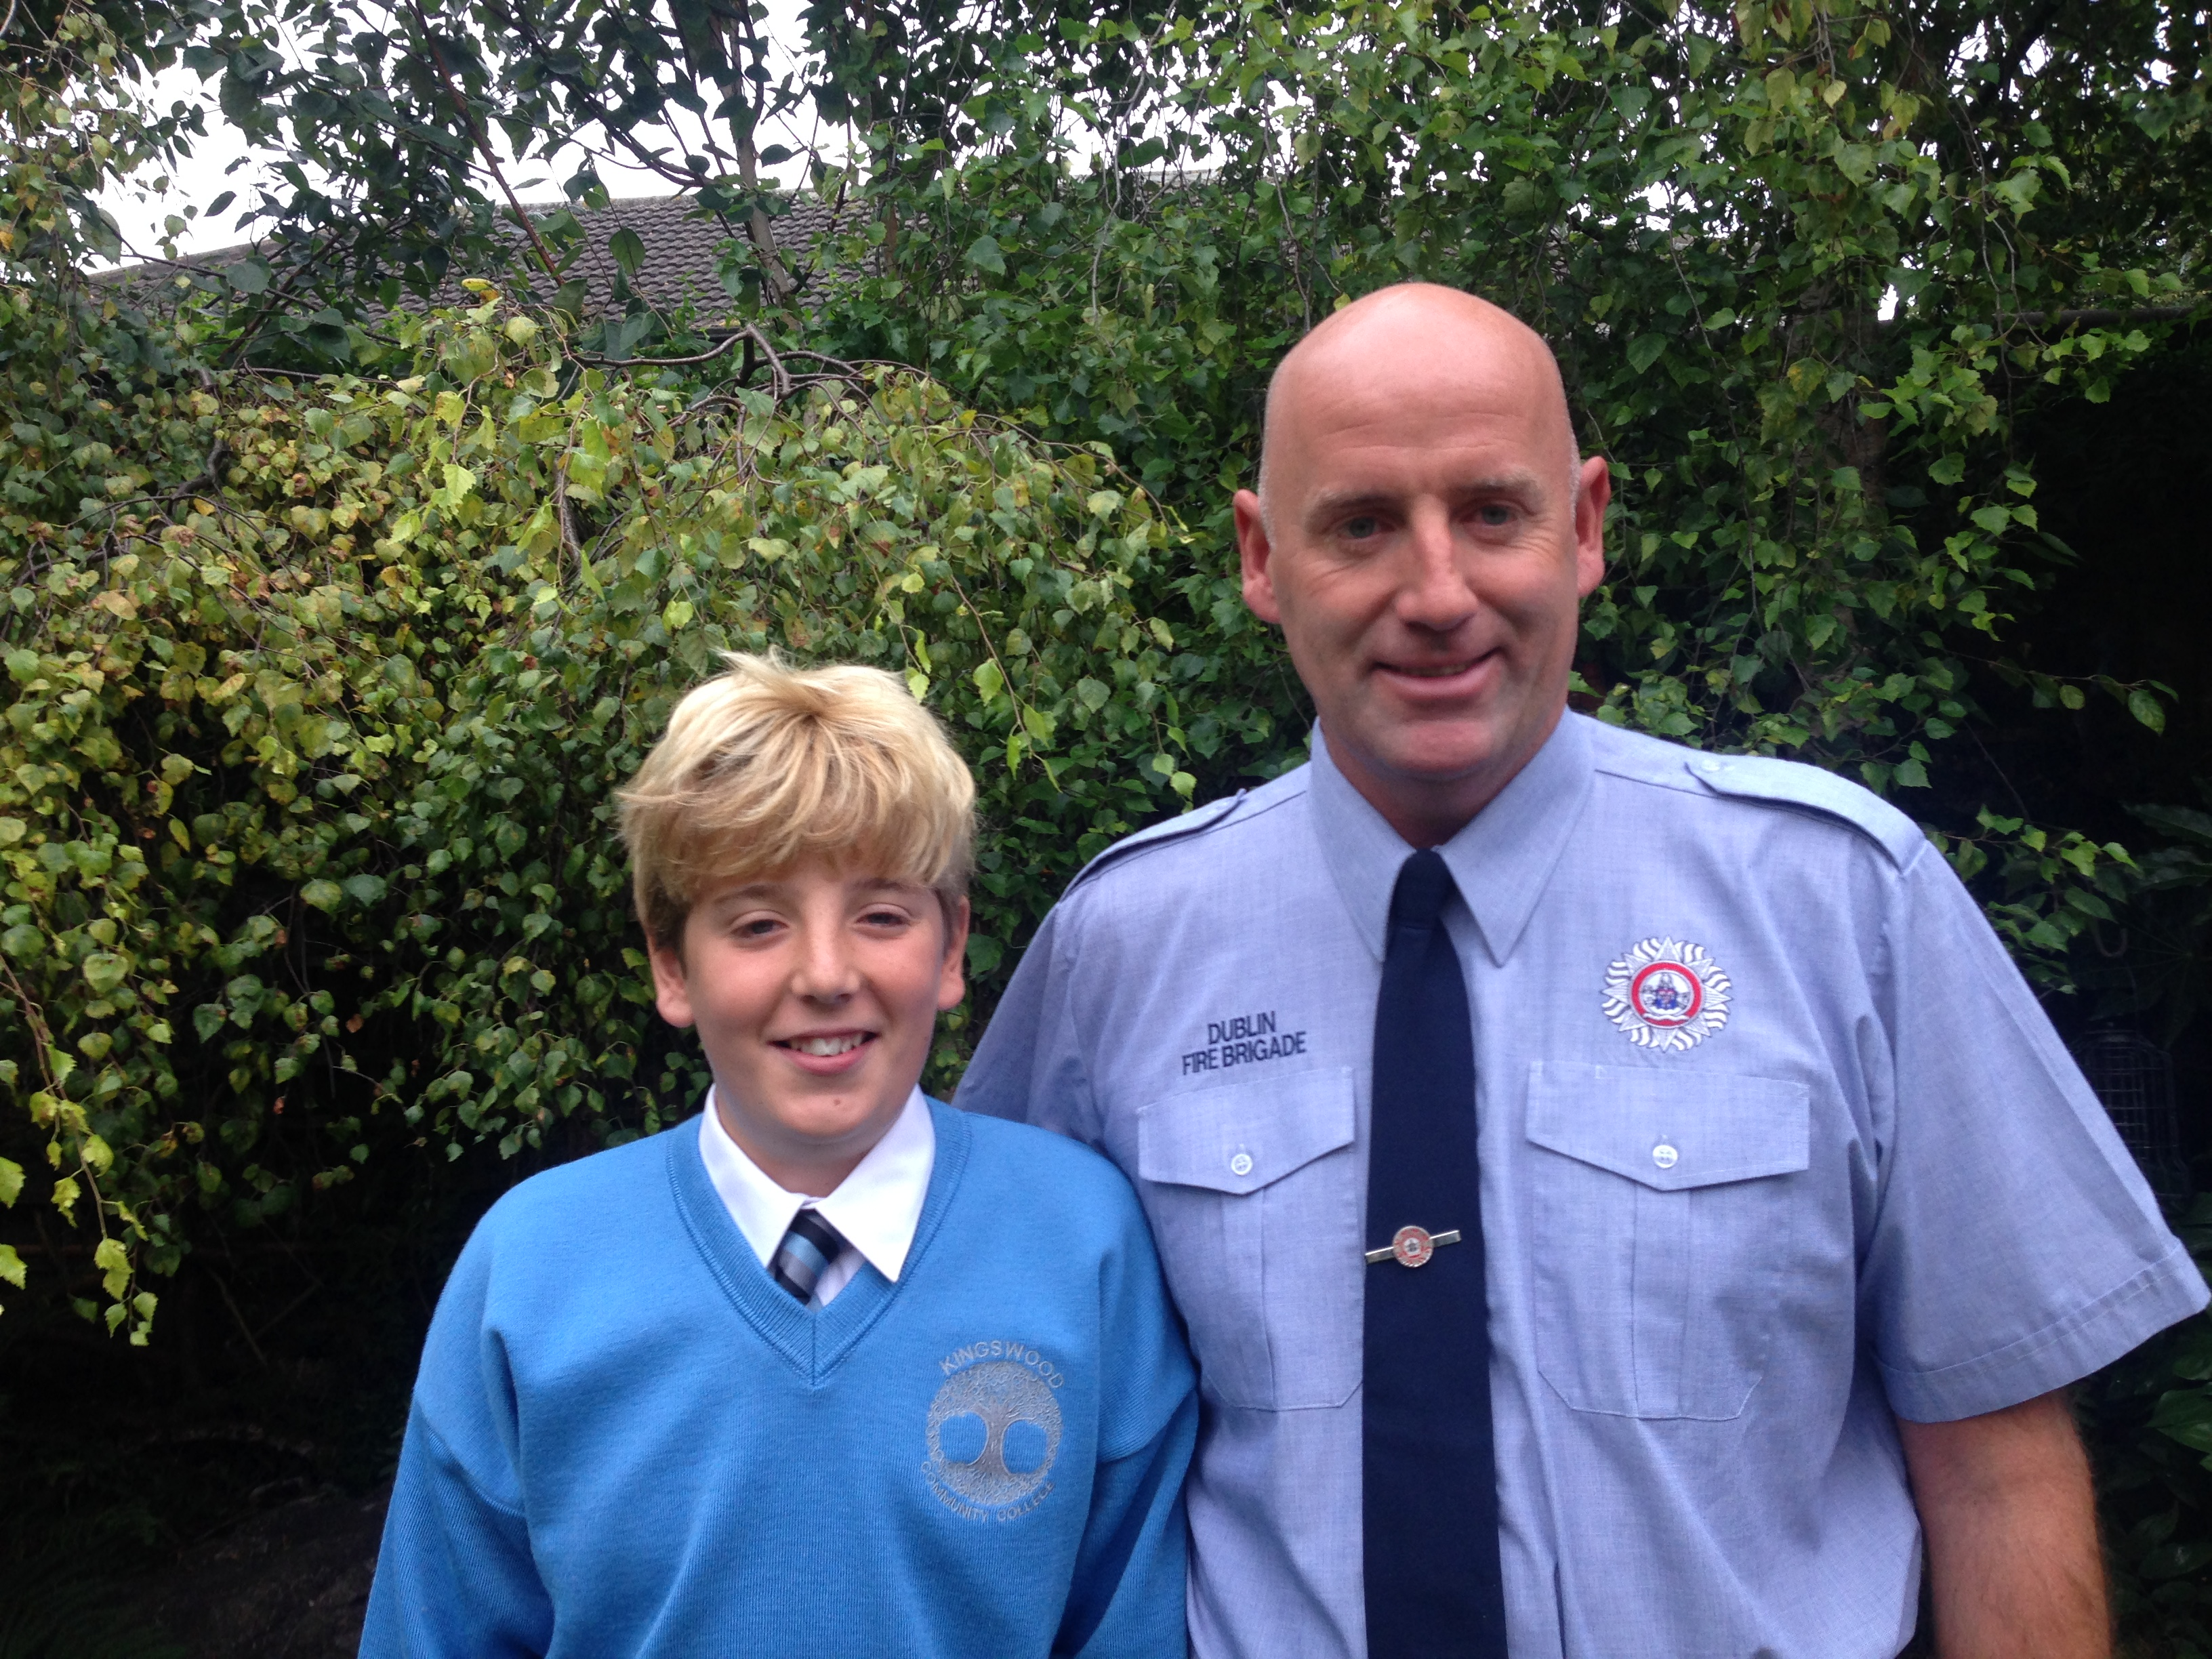 Vincent and Callan Donegan - Starting Secondary School